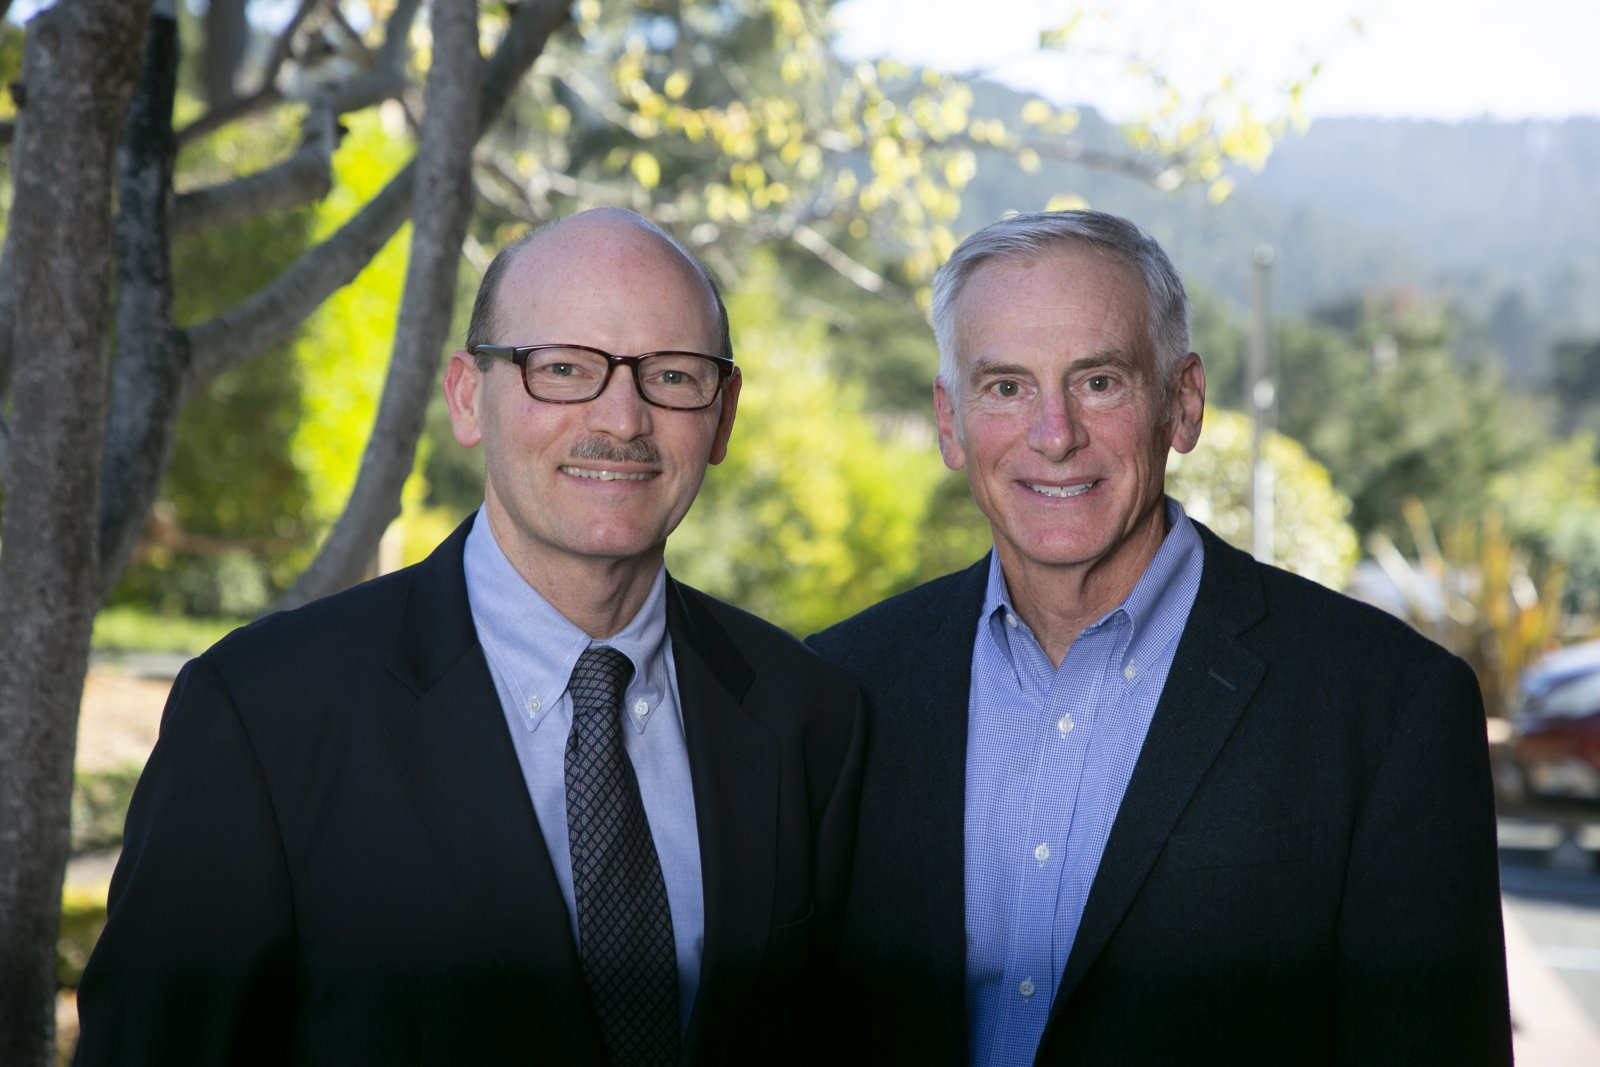 Gafill, Pezzini Named to CFMC Board of Directors